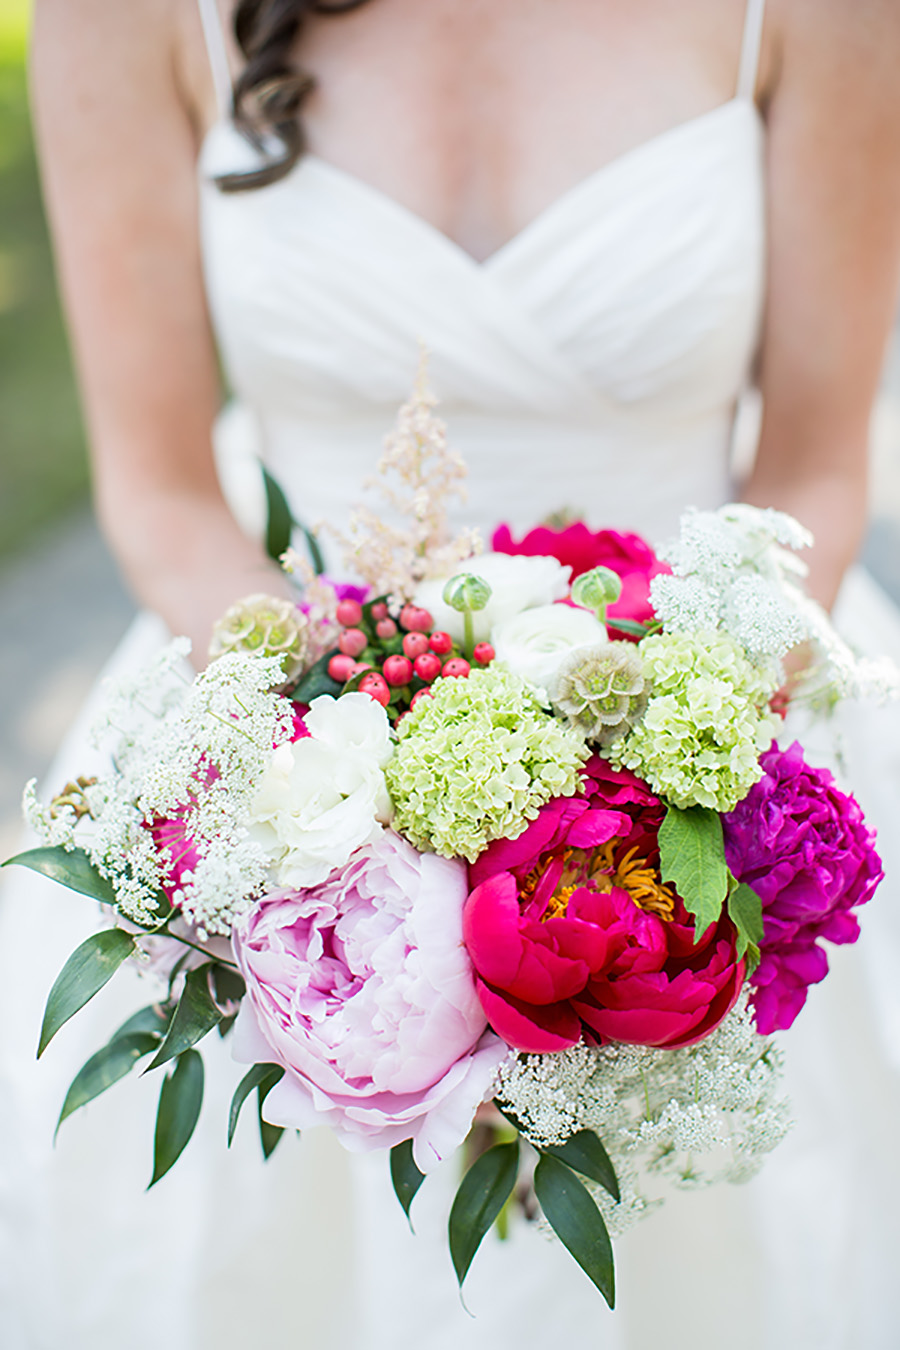 wedding_flowers2.jpg